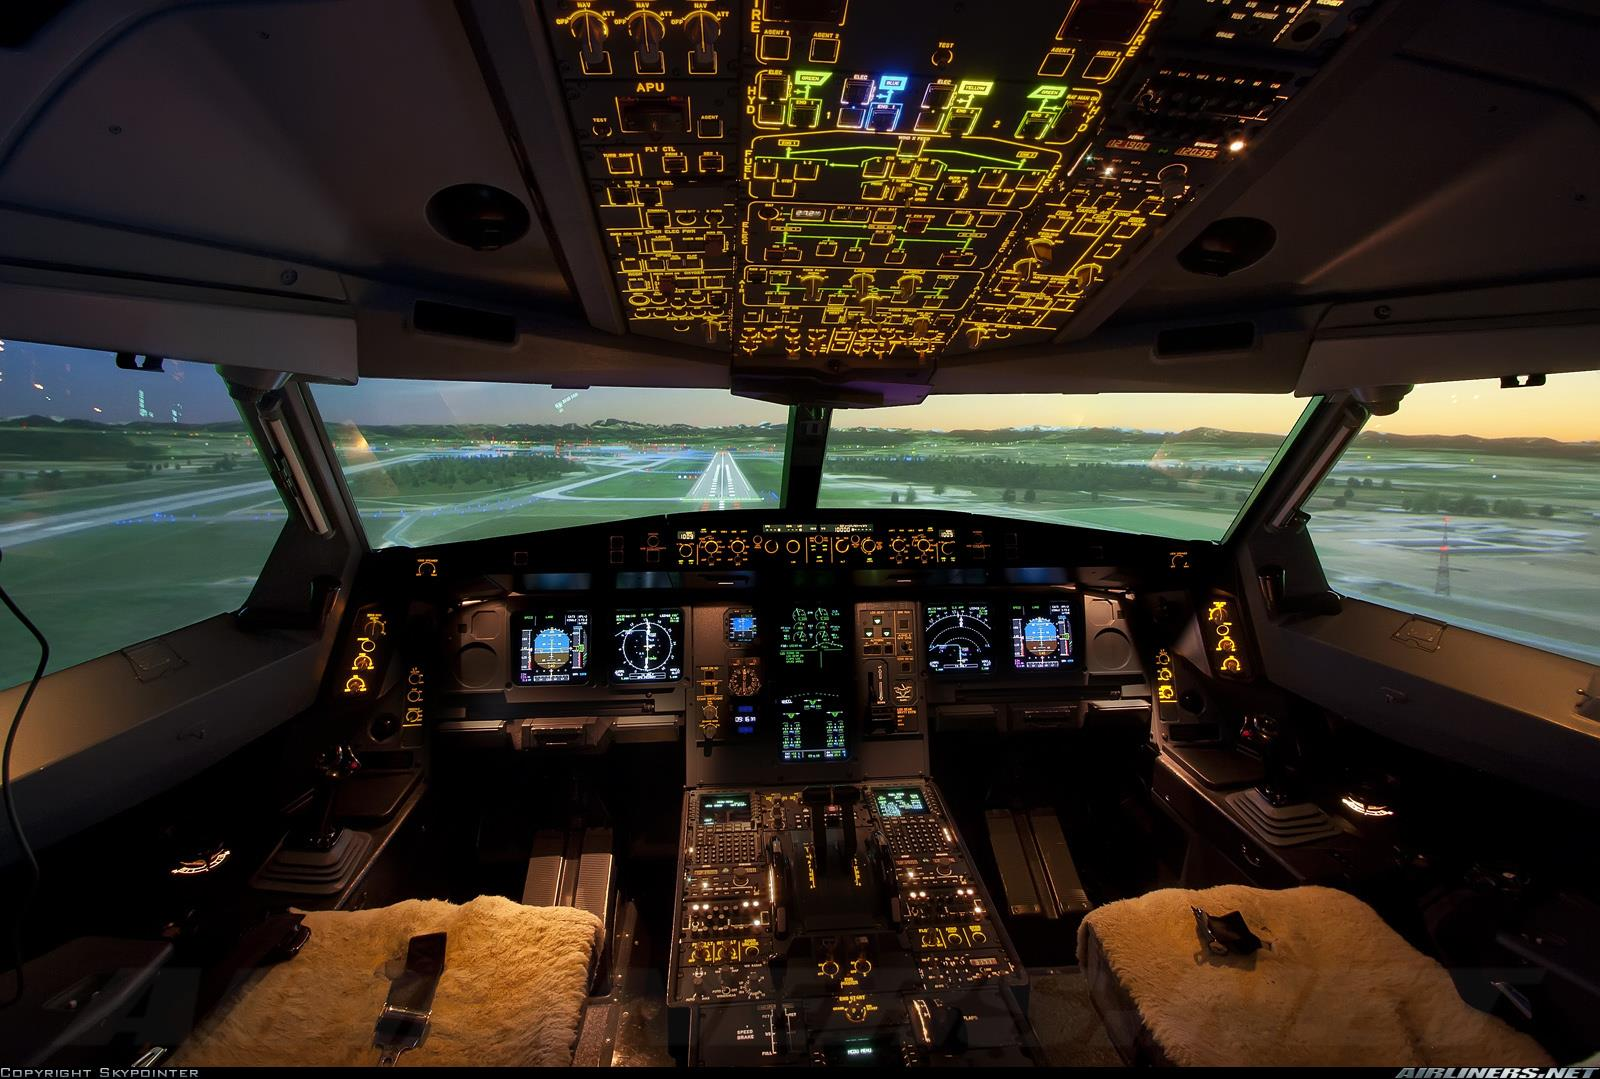 Alliance Aviation reviews | Aviation Services at 5600 NW 36th St - Miami FL